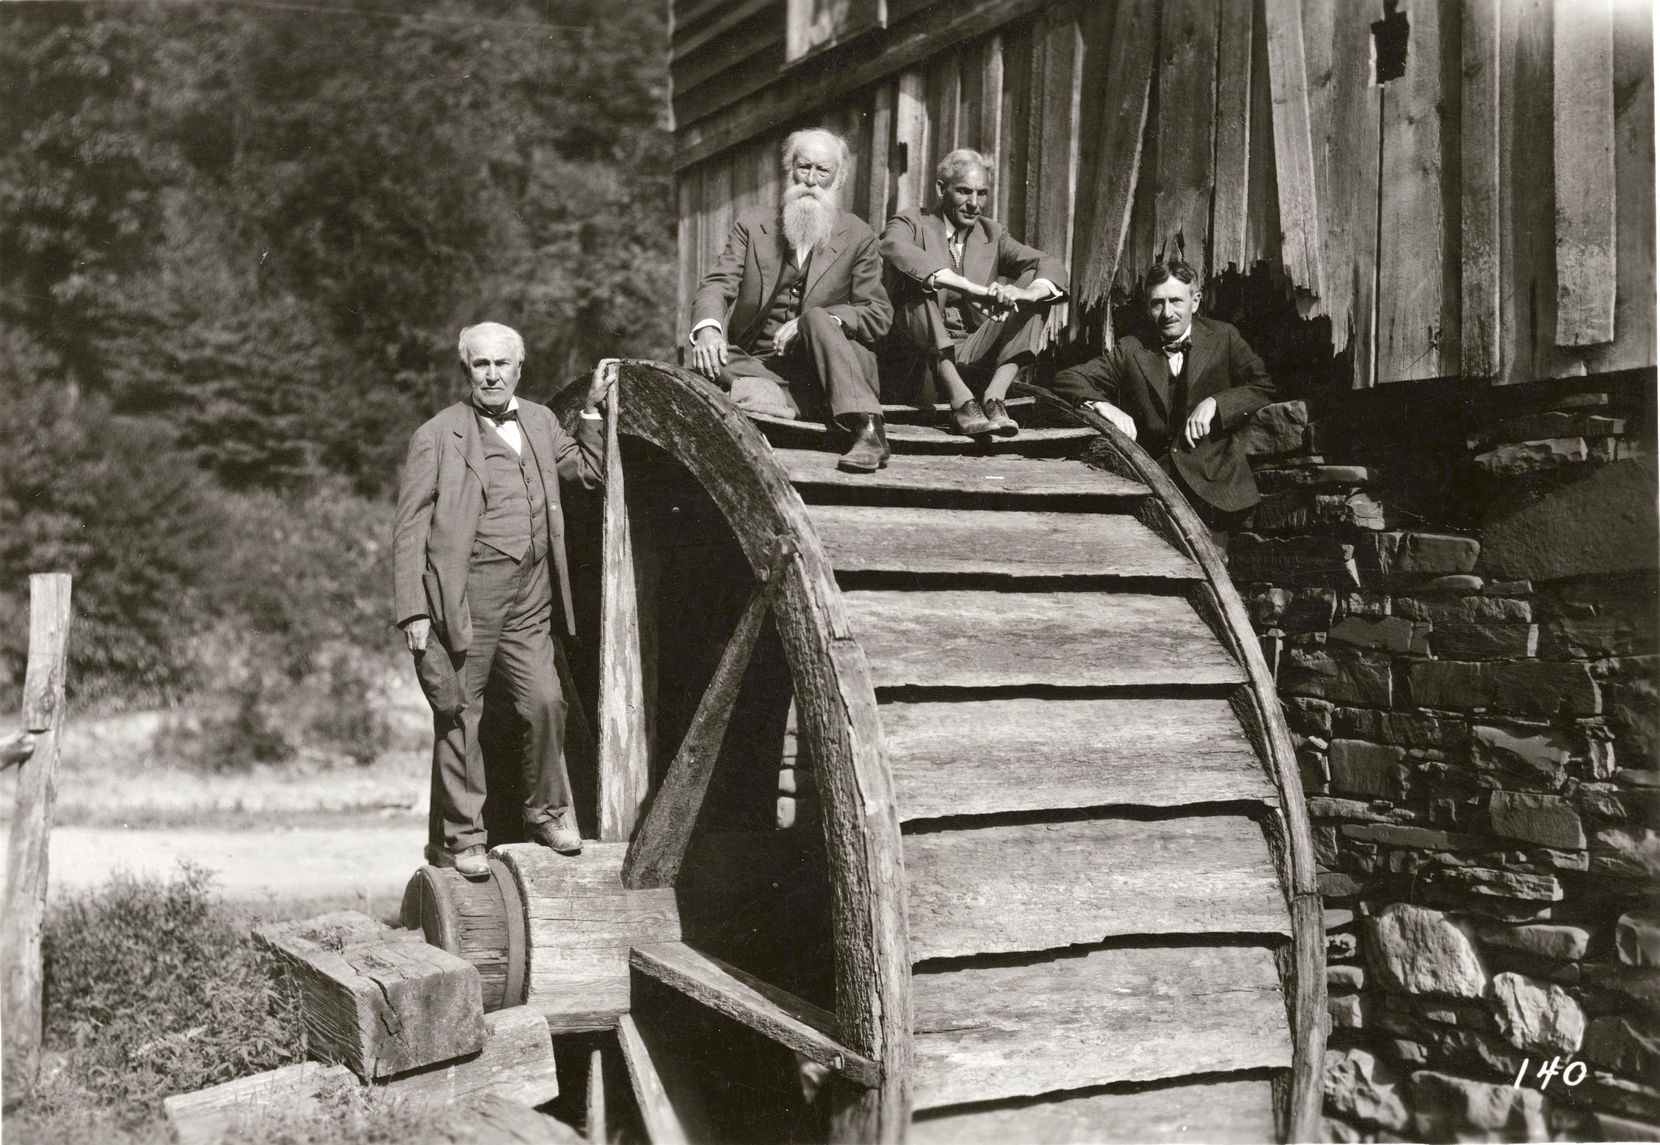 (From left) Thomas Edison, naturalist John Burroughs, Henry Ford and Harvey Firestone pose on a water mill wheel.